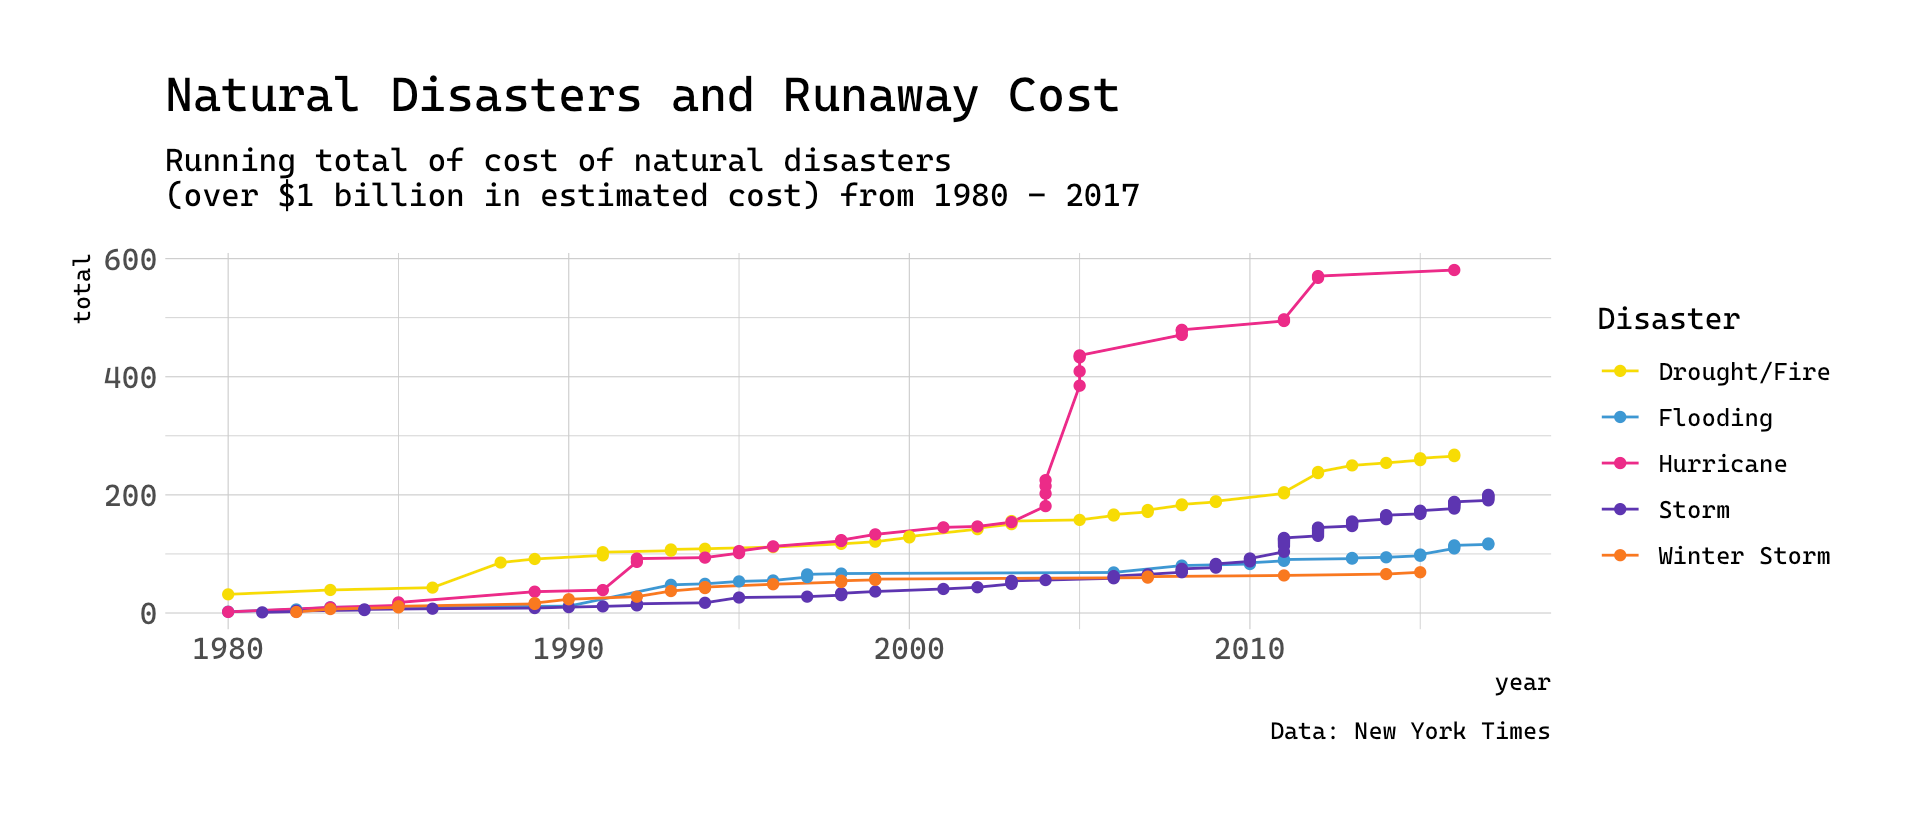 Visualizing Natural Disaster Cost